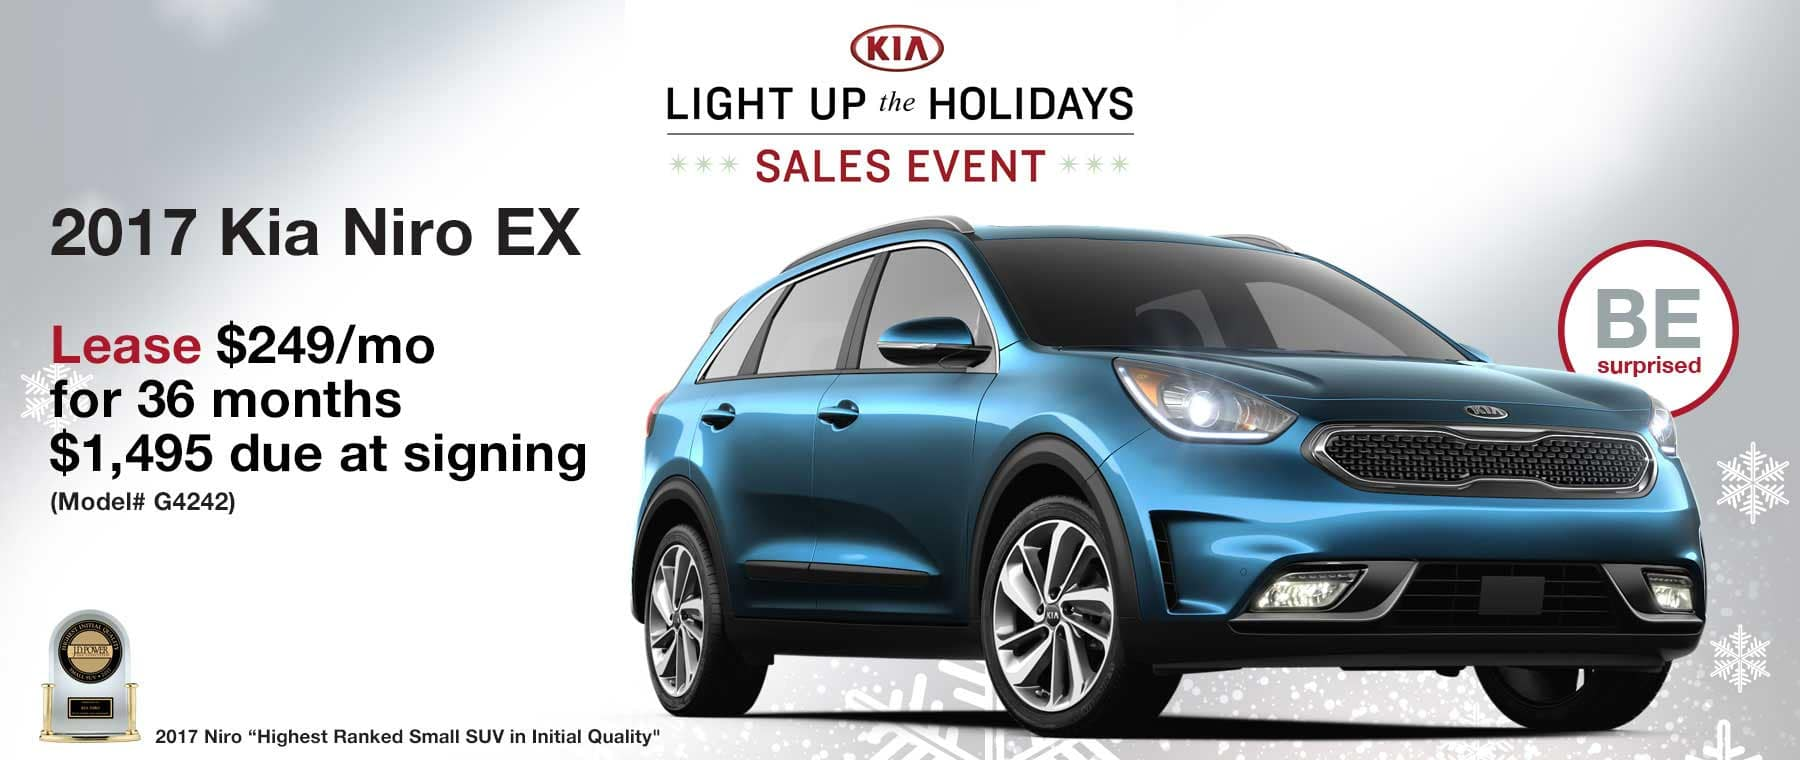 Lease a new 2017 Kia Niro EX for $249 per month with $1,495 due at signing.